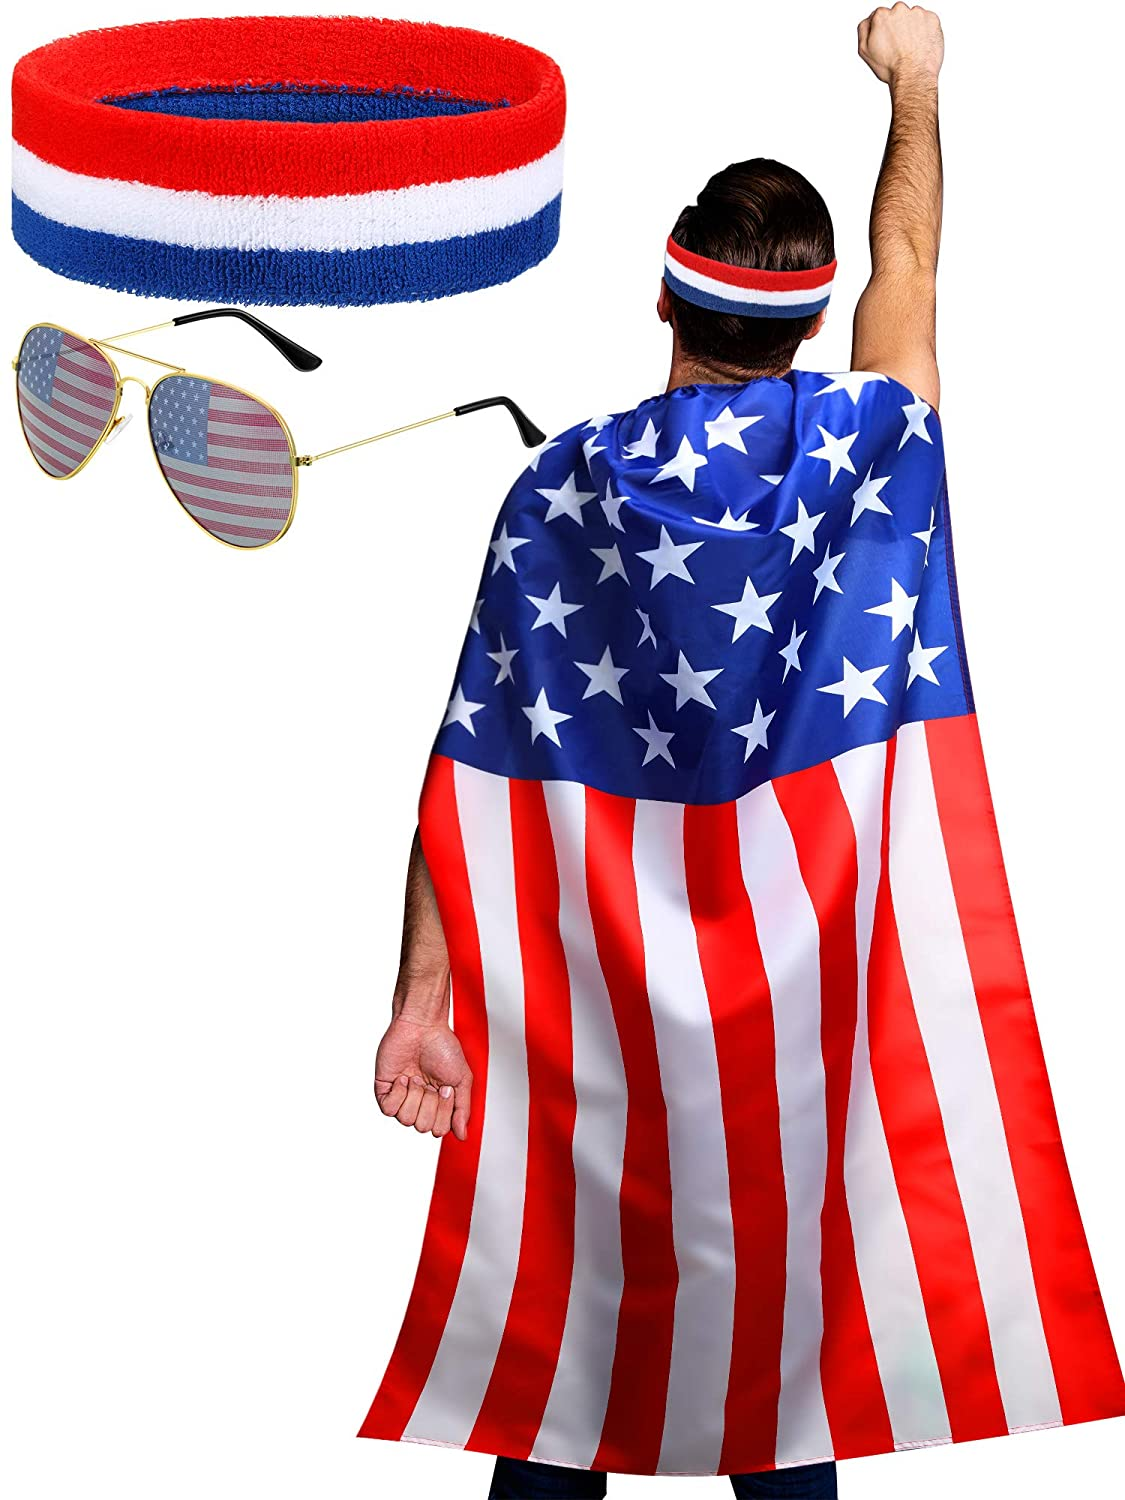 American Flag Costume Cape, Retro 80's American USA Sunglasses and USA Flag Headband for 4th of July Independence Day Celebration : Beauty